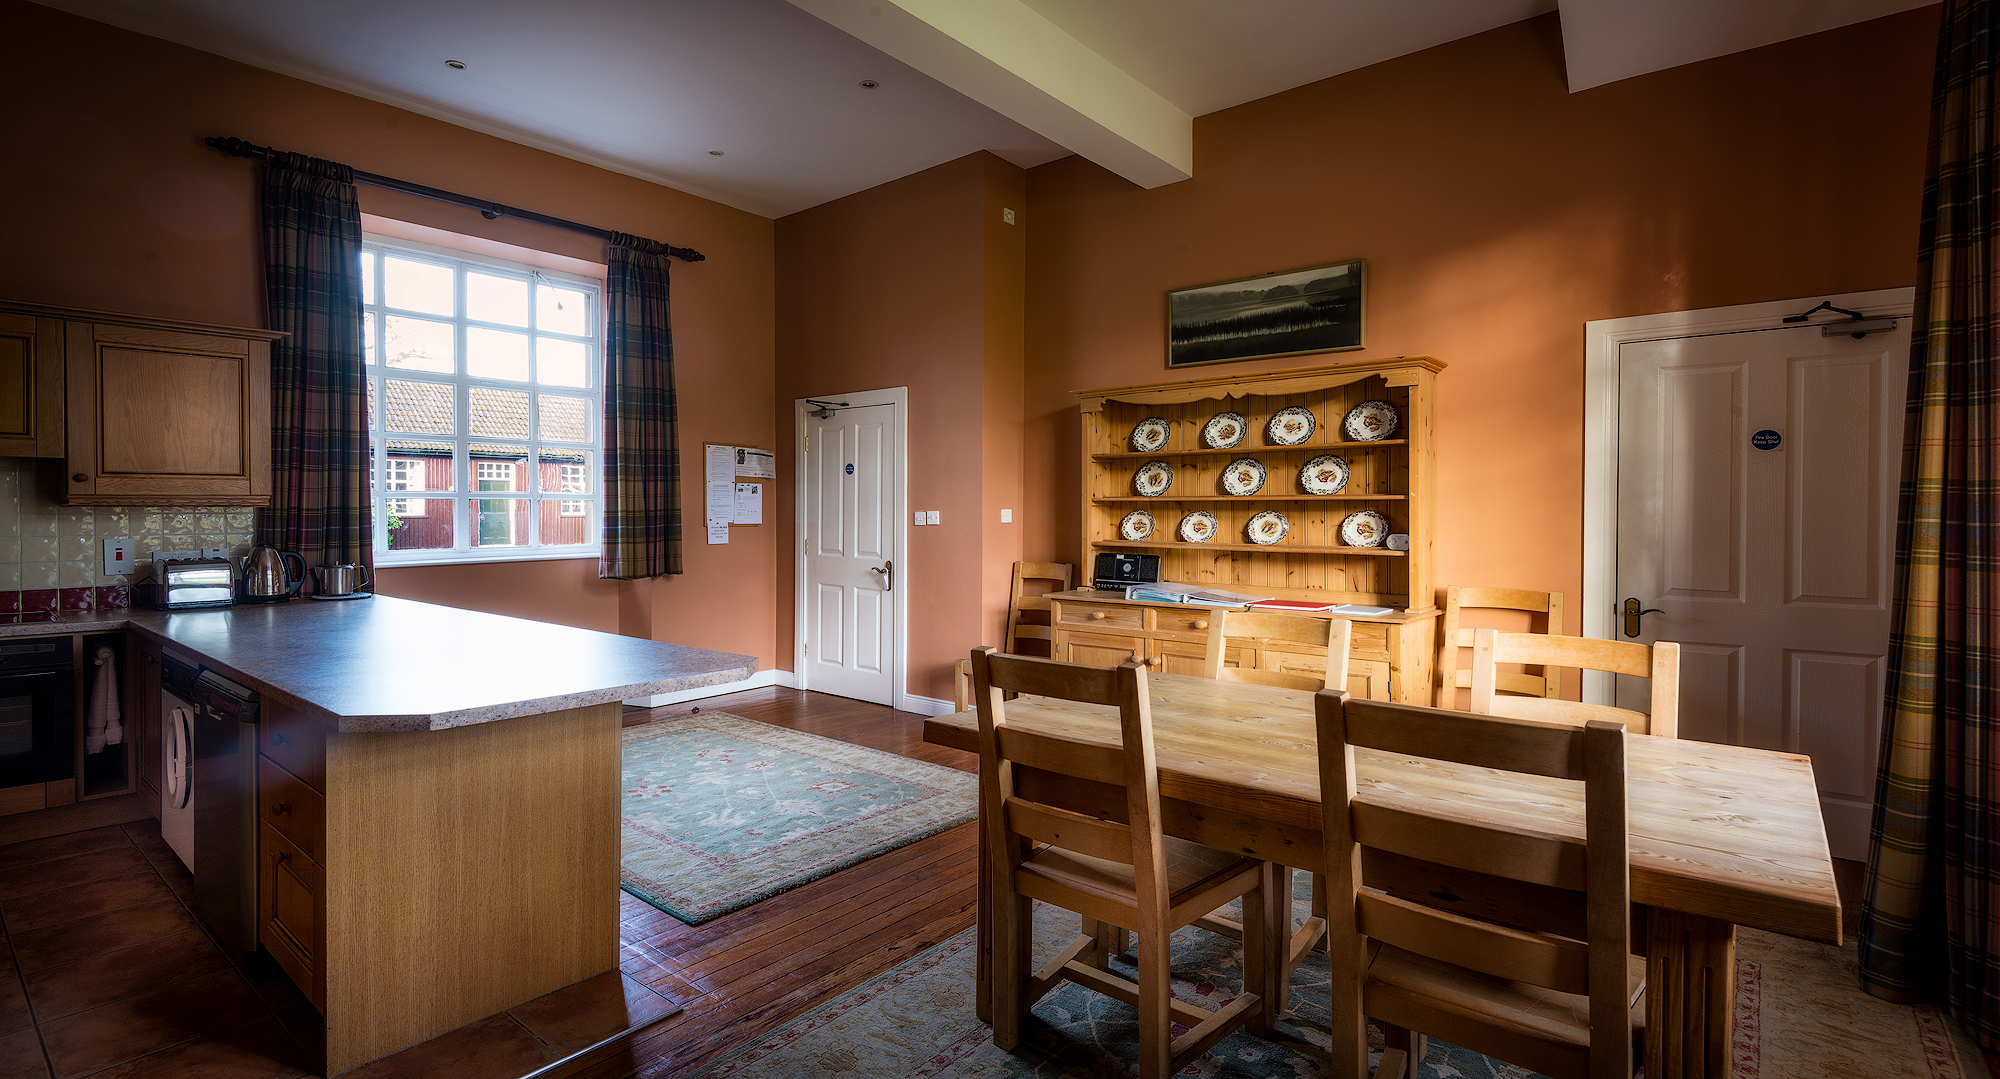 The Clock Tower kitchen & dining area self catering co tyrone